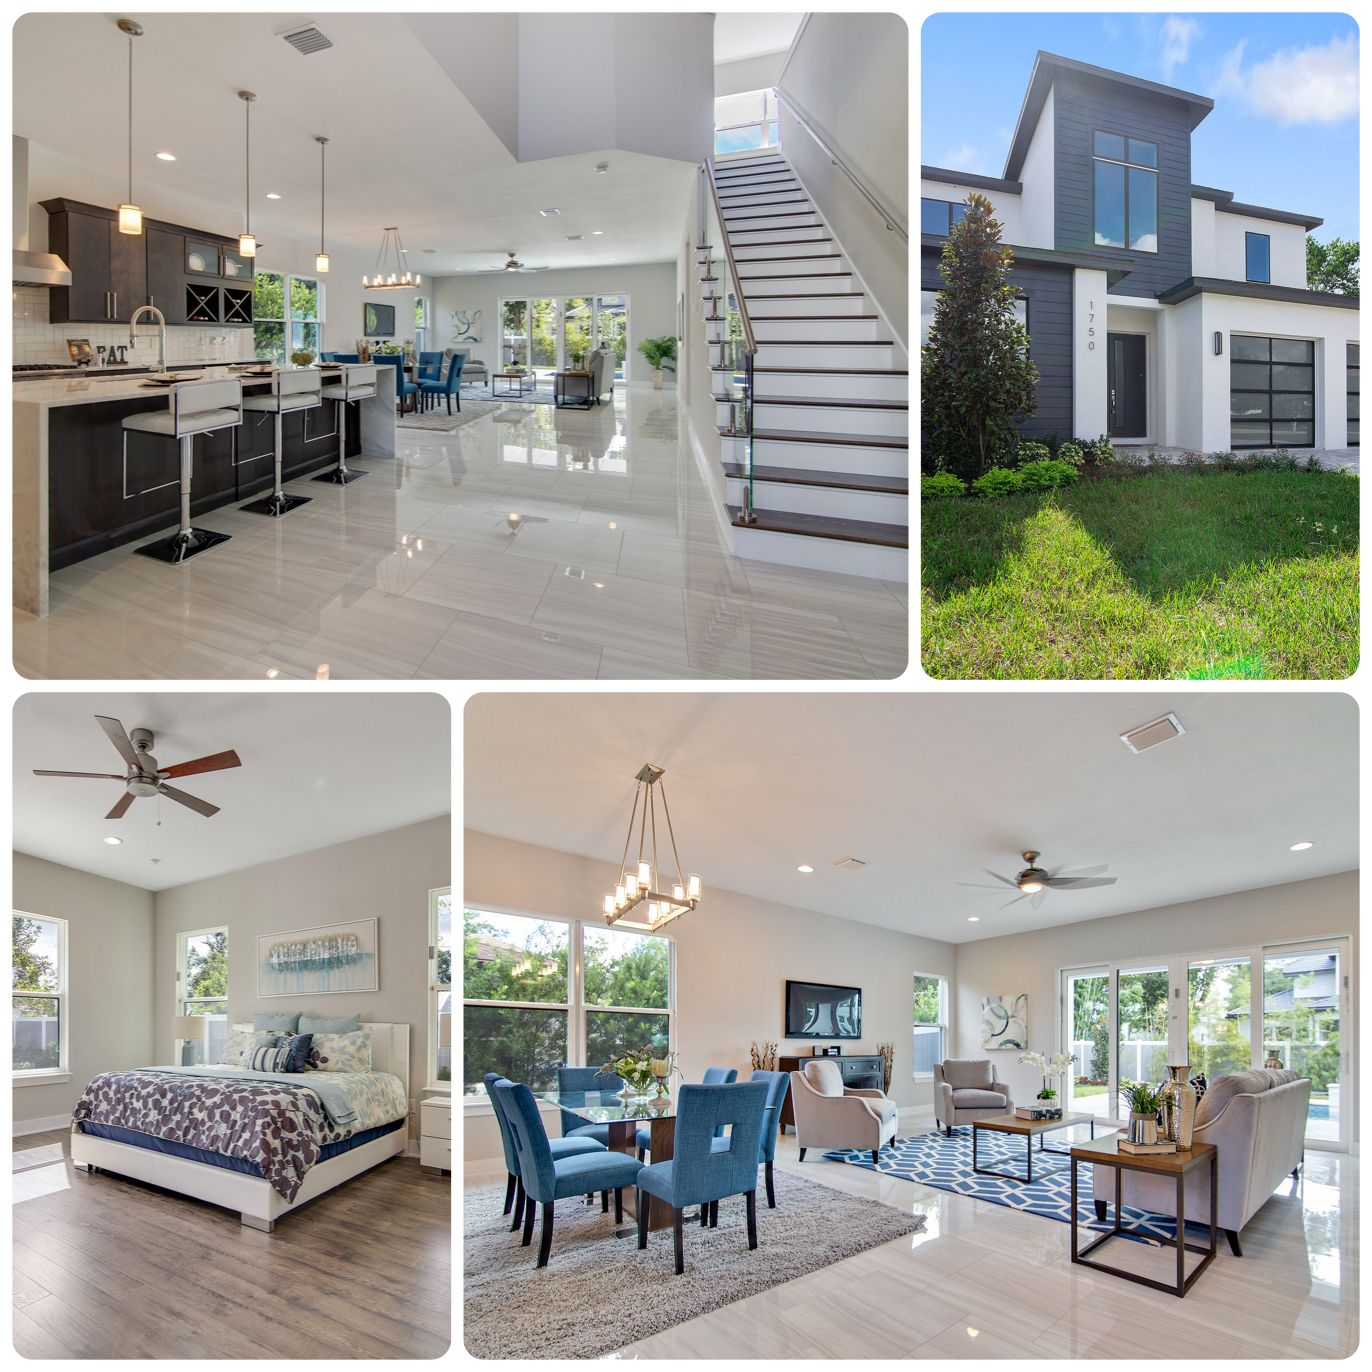 Affinity At Winter Park Home: Come Check Out This Lovely Modern Home In Winter Park FL